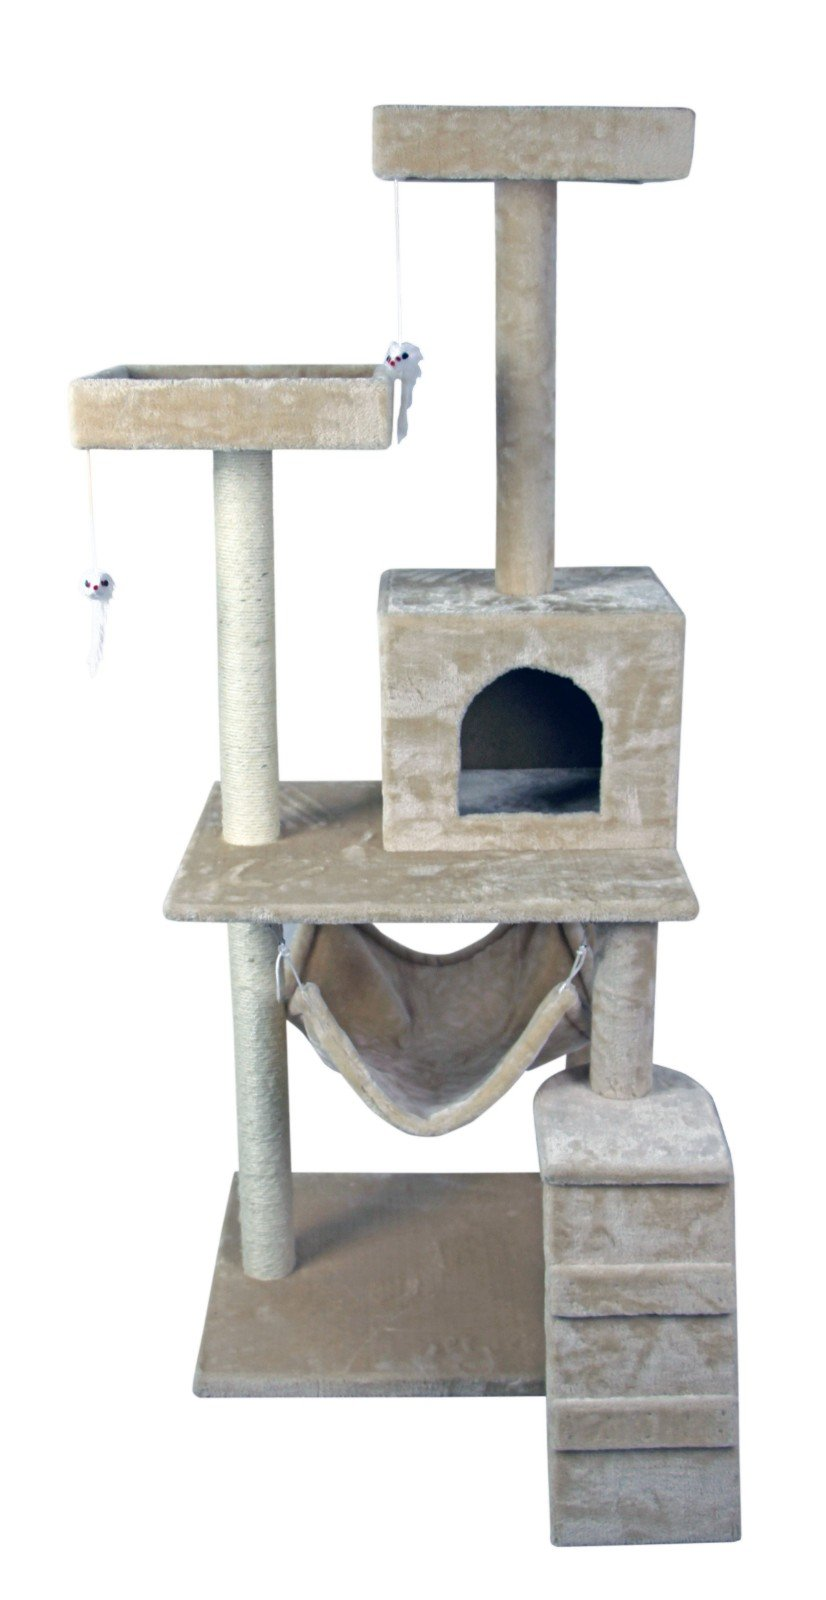 Hiding Nice Cat Tree Tower Condo Furniture Scratch Post Kitty Pet House Play Furniture Sisal Pole Stairs and Hammock, 29.92'' L, Beige by Hiding (Image #8)